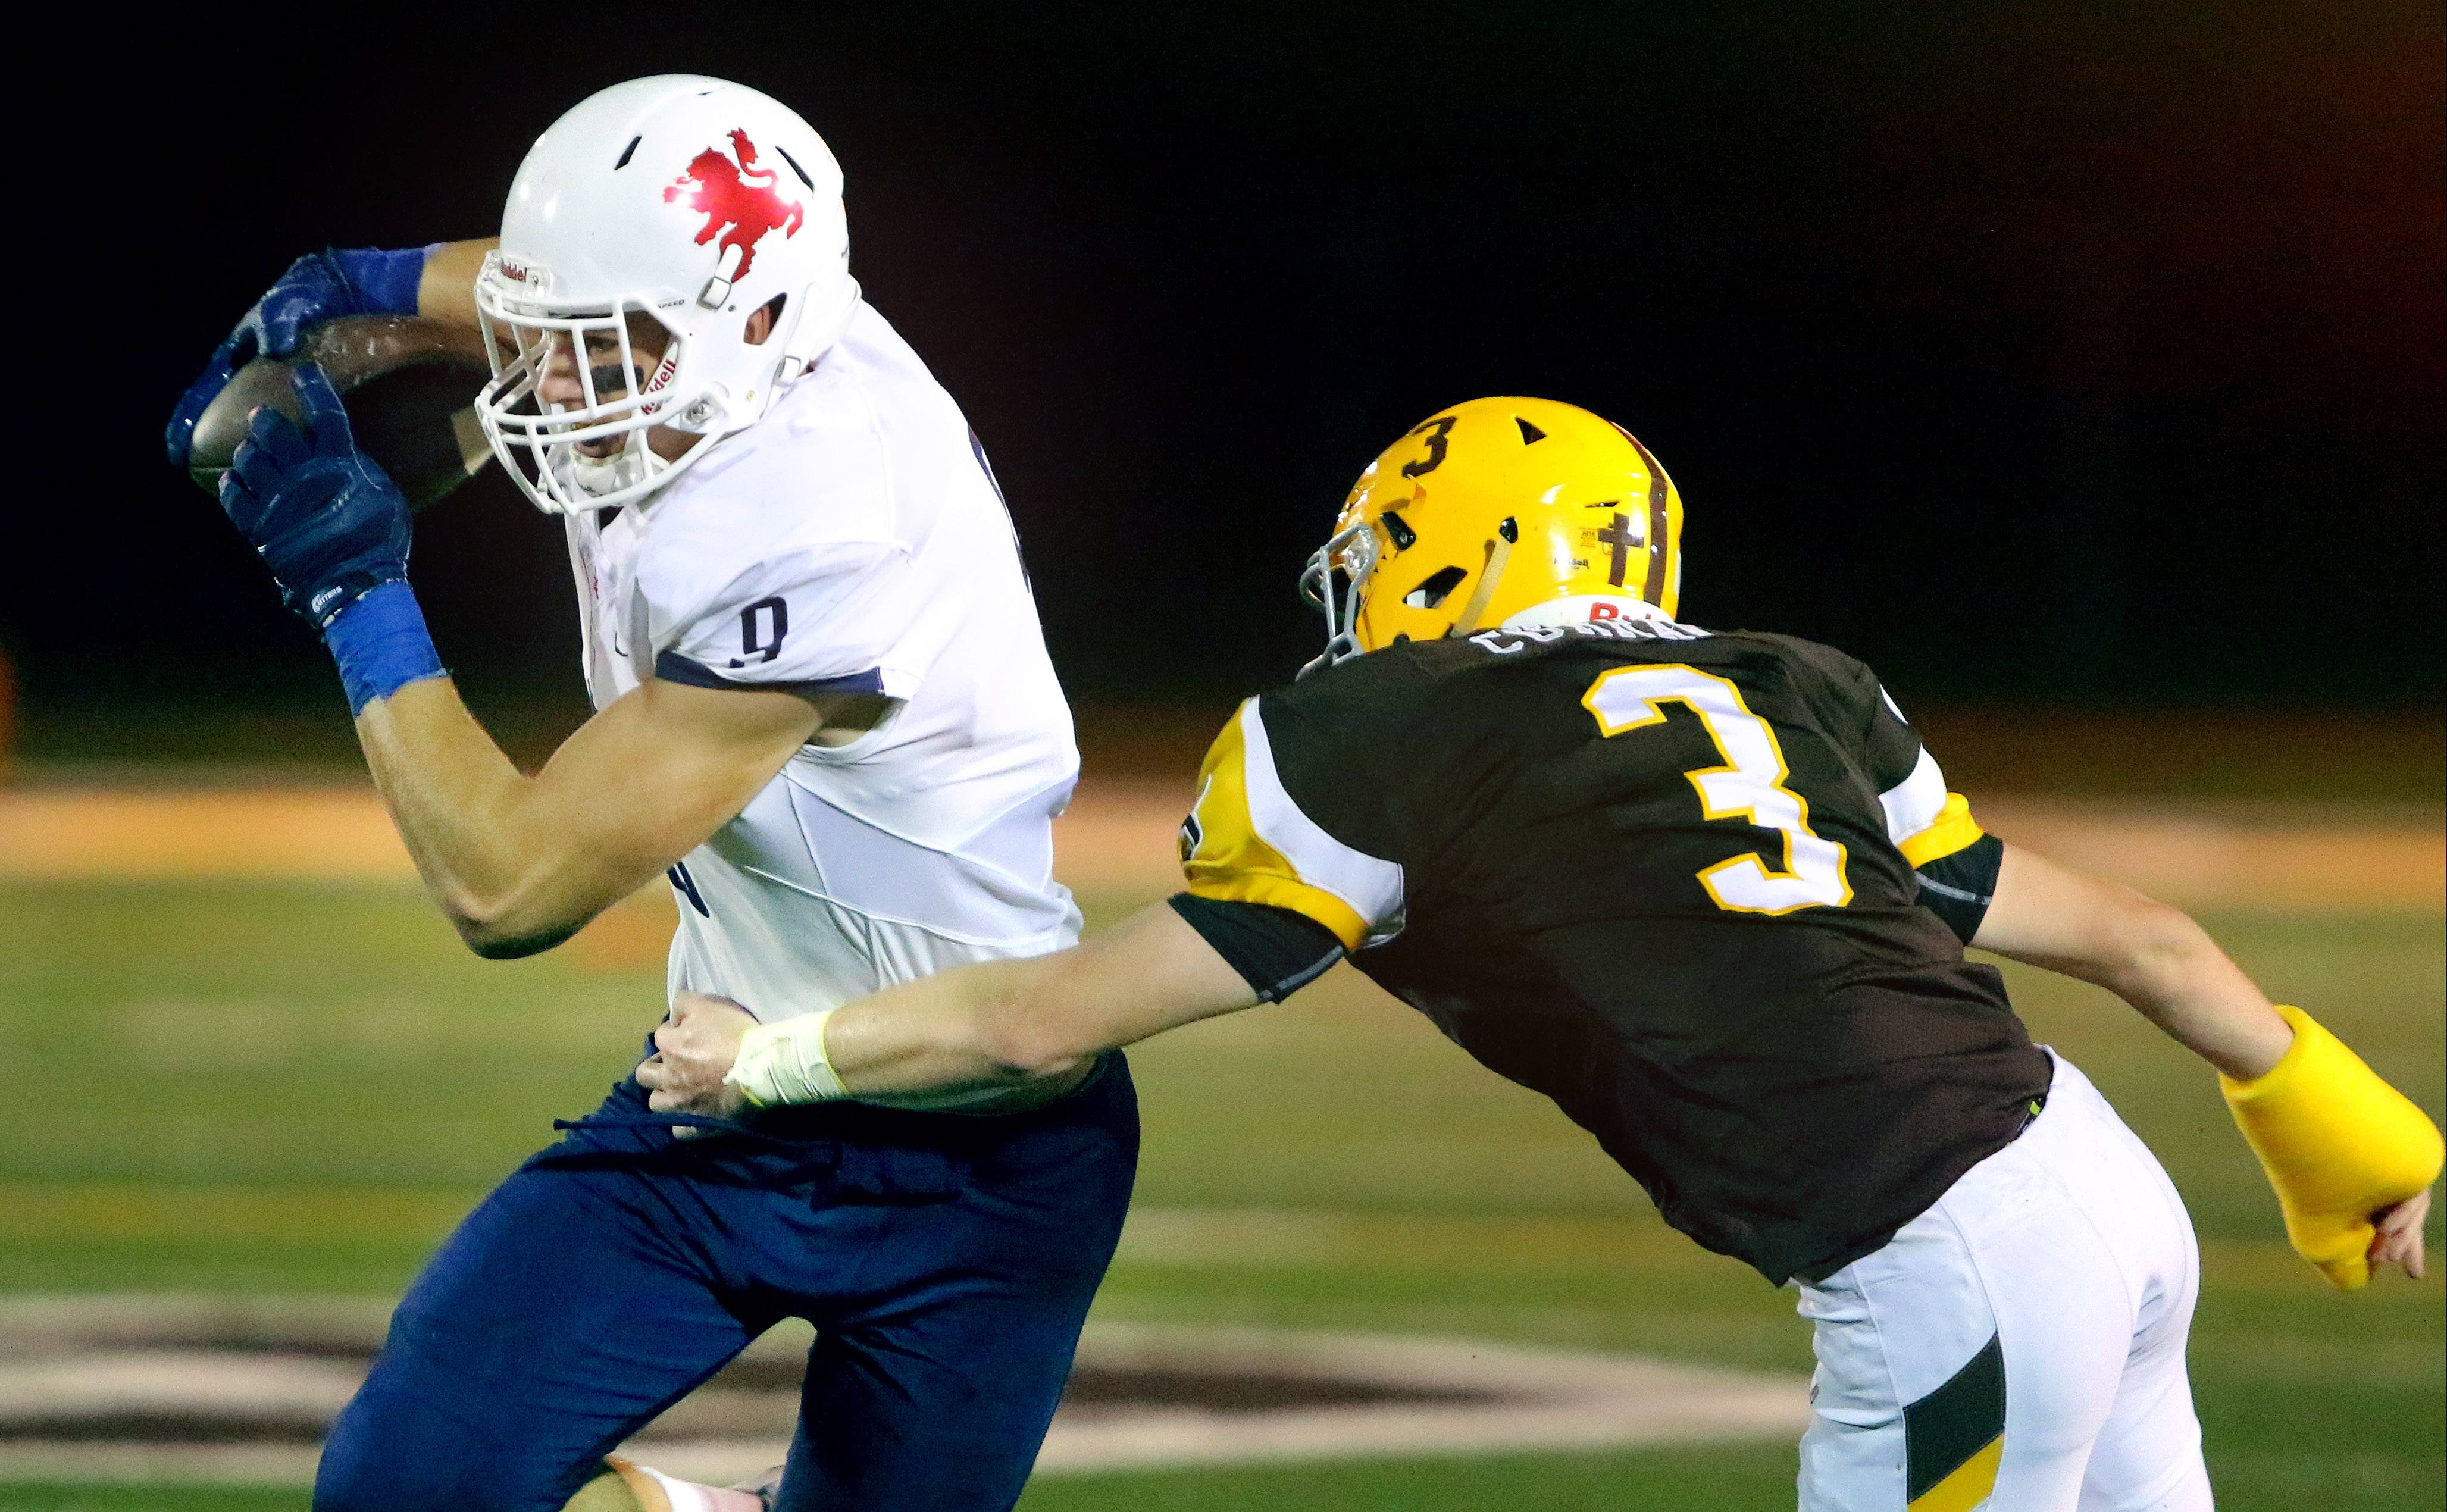 St. Viator's Cole Kmet, left, is pursued by Carmel Catholic's George Curran on Friday in Mundelein.